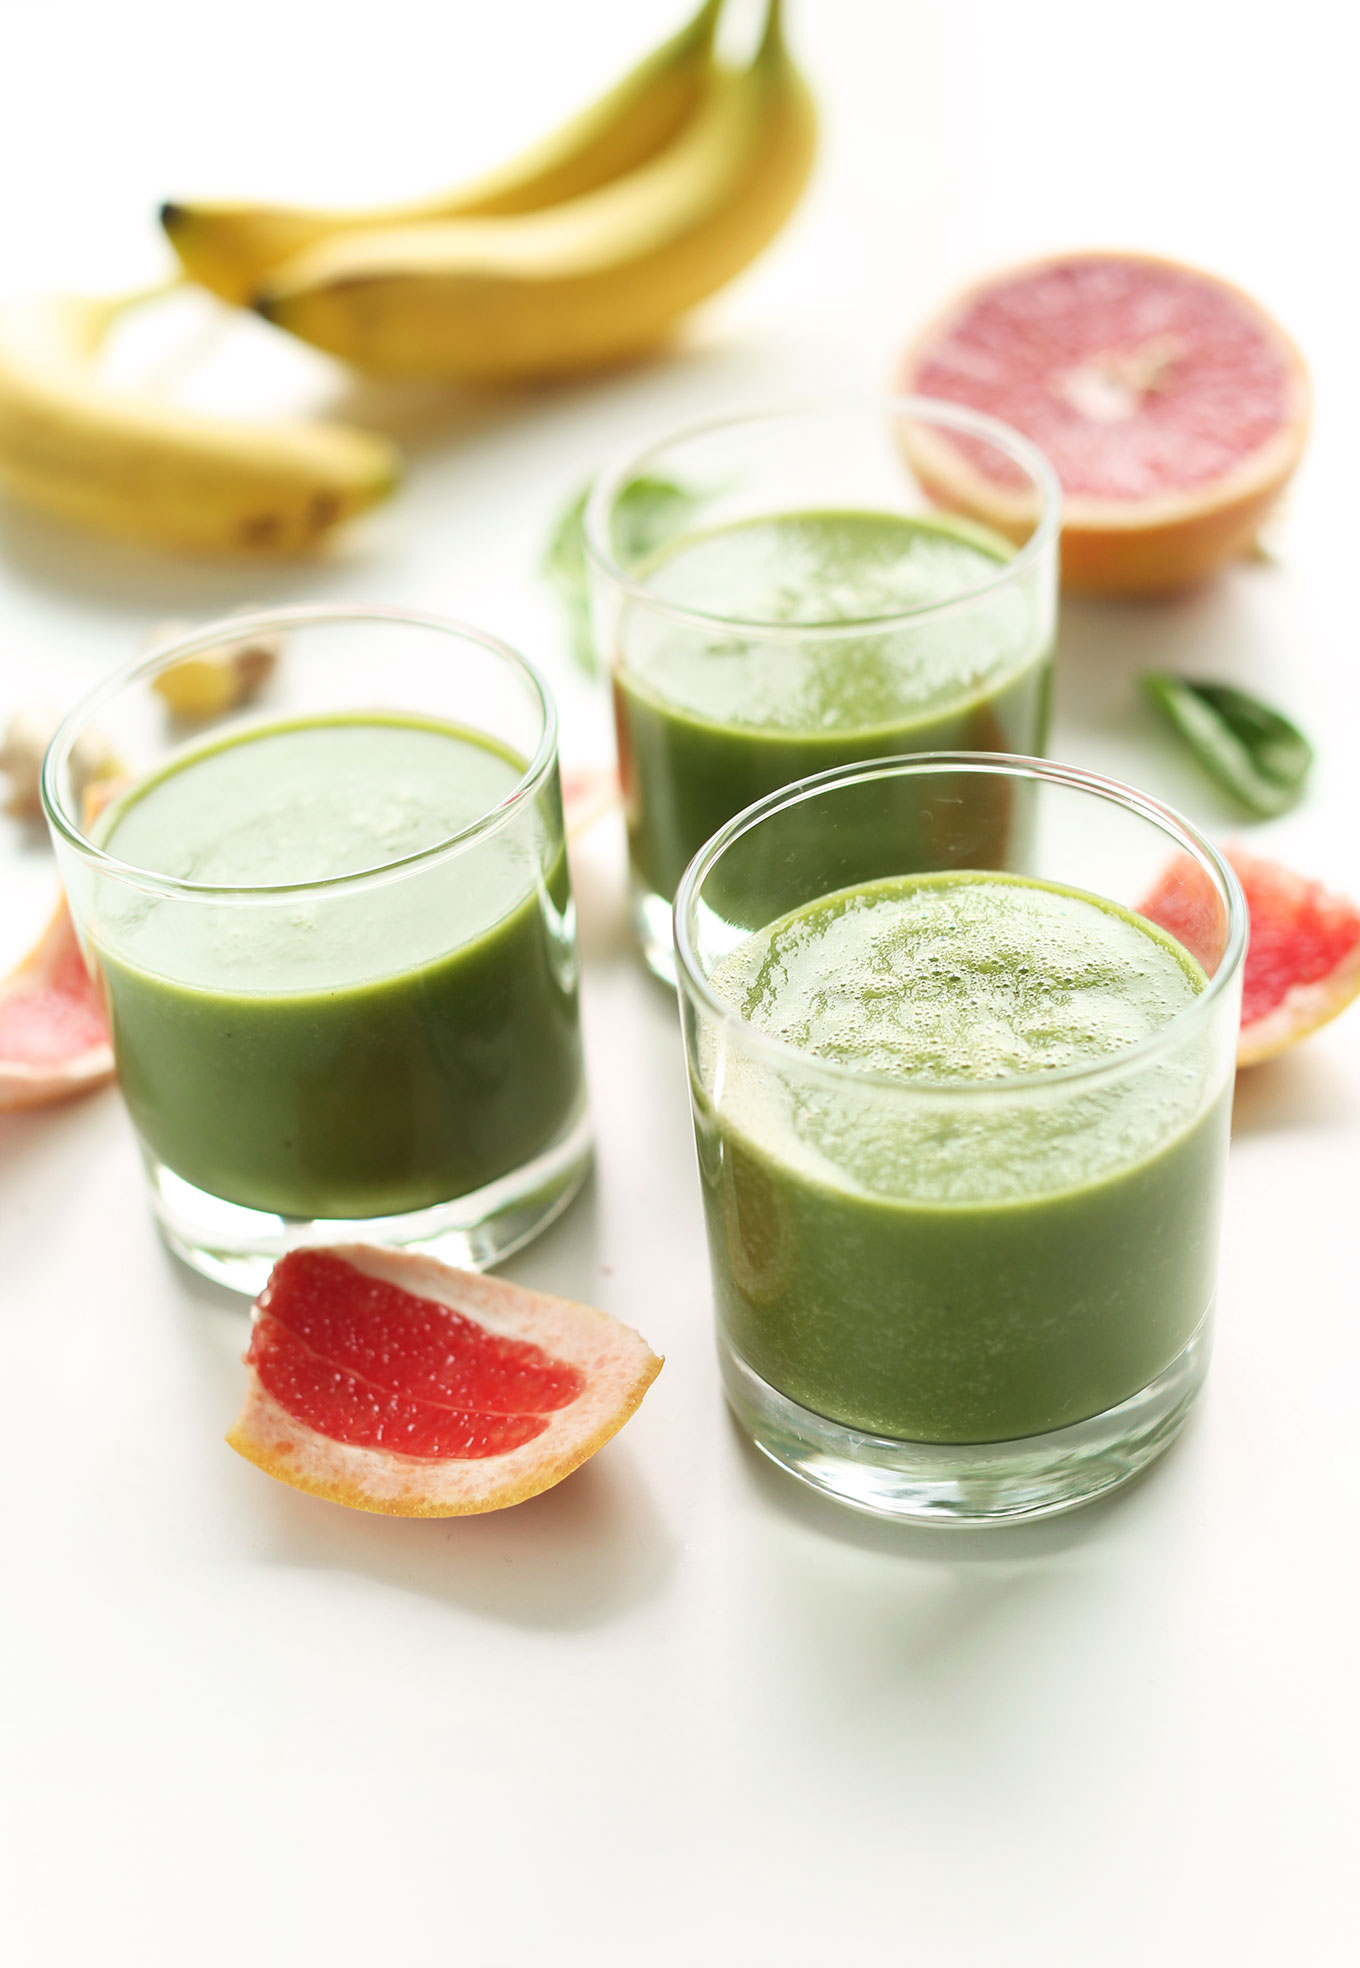 Glasses of our naturally detoxifying Grapefruit Green Smoothie